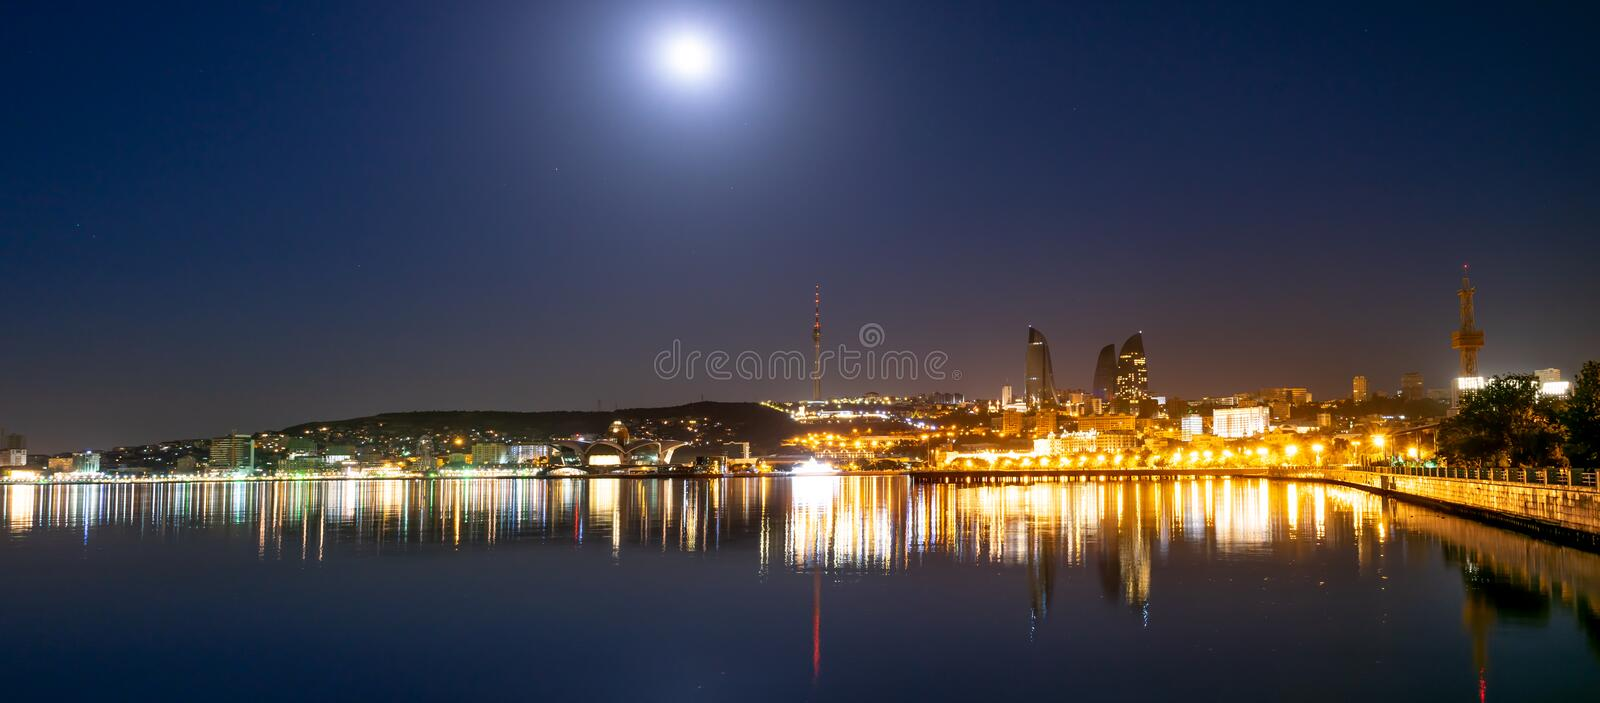 Baku Azerbaijan - 16 June, 2019. Reflection of the lights of the night city in the caspian sea. Night view of Baku with the Flame royalty free stock images